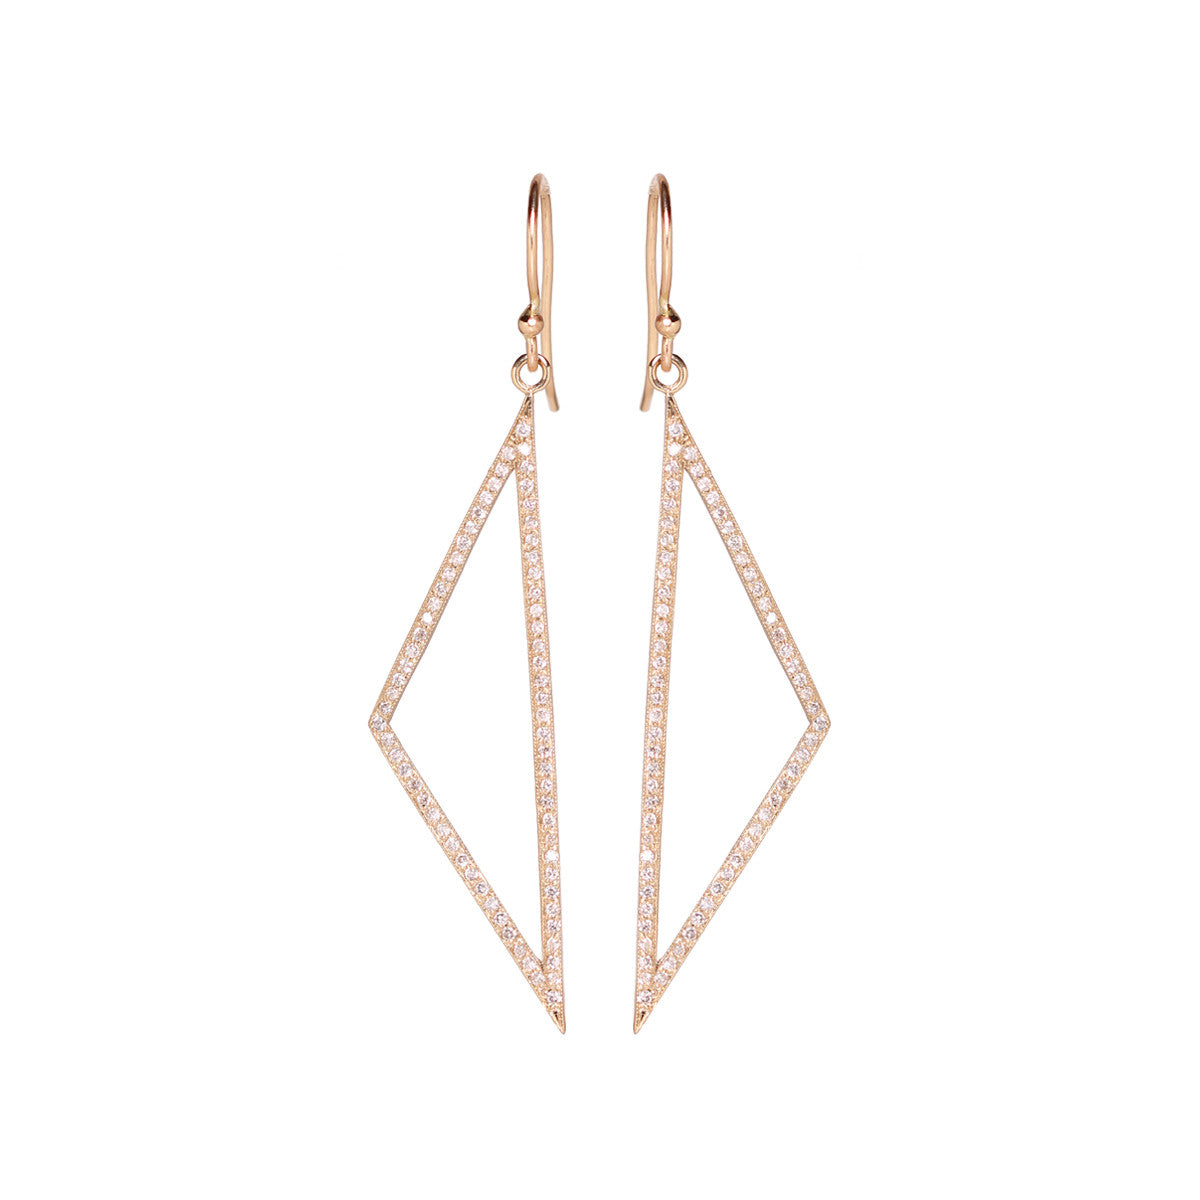 14k pave wide open triangle earrings